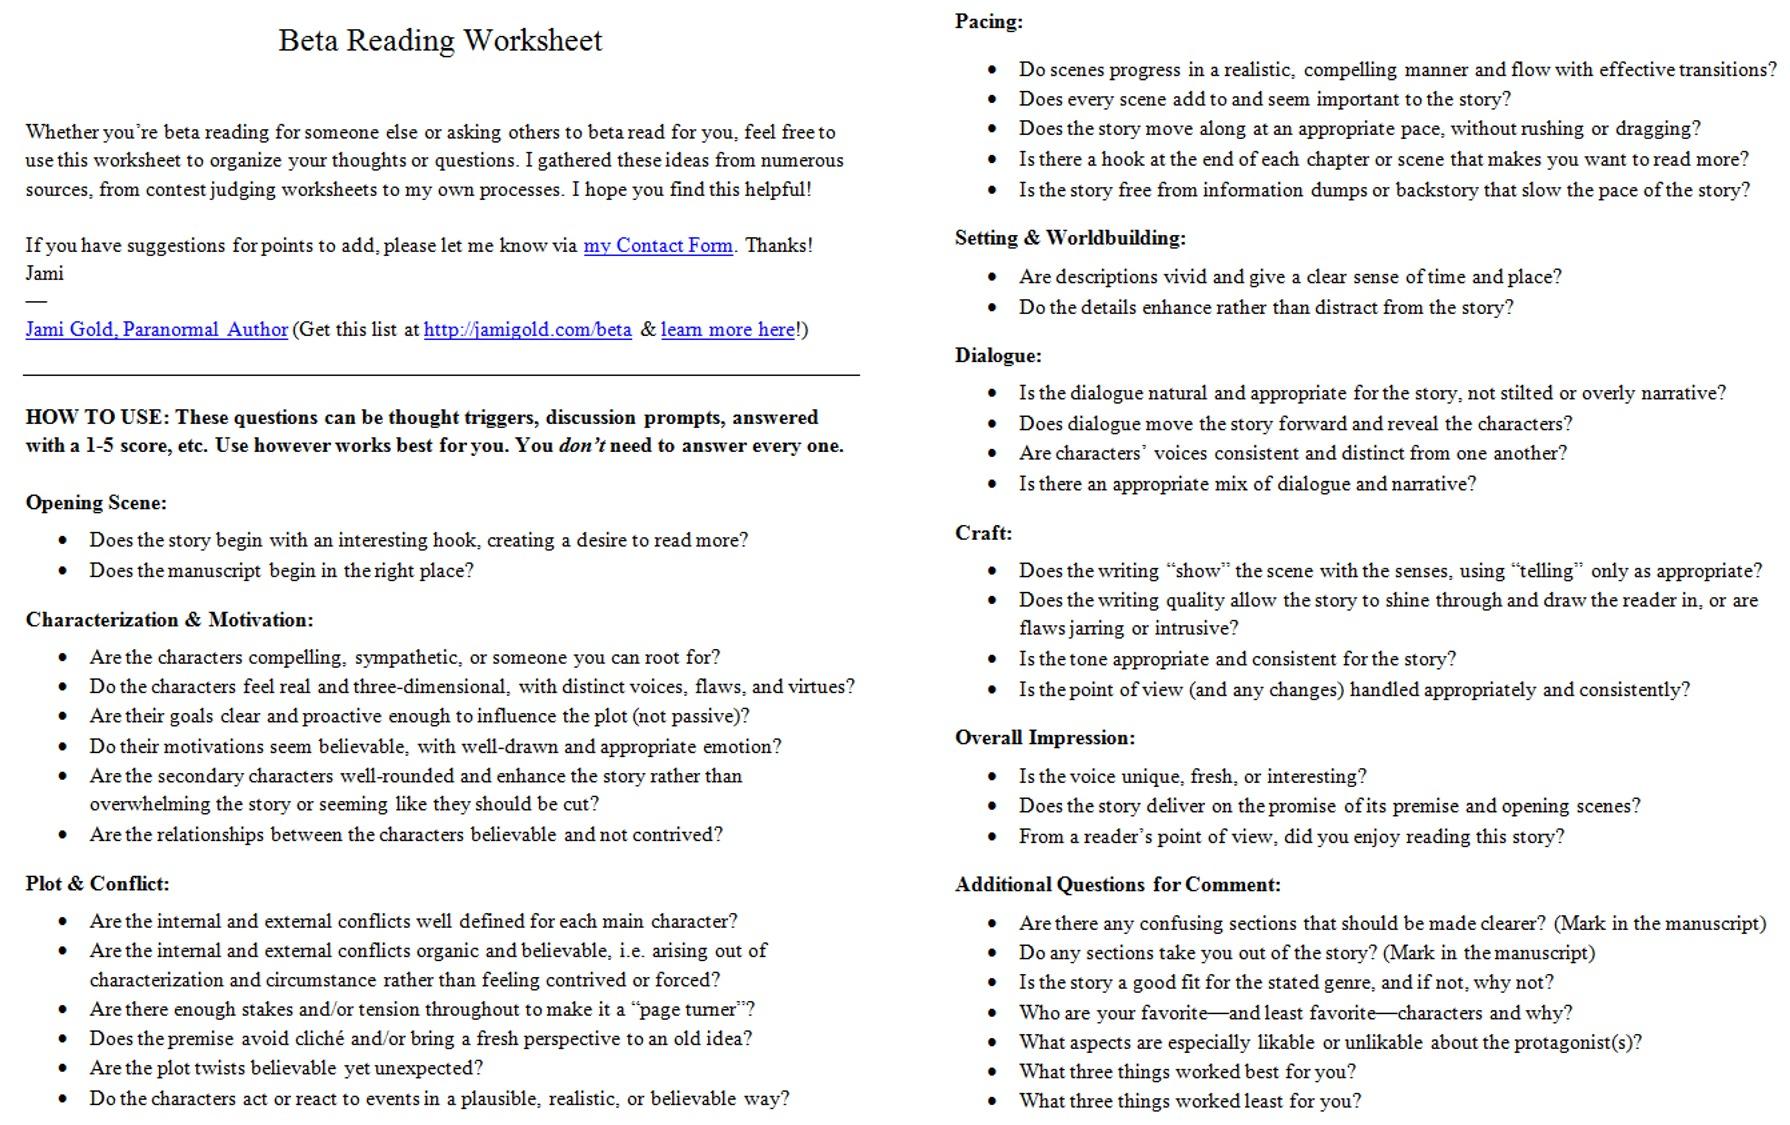 Weirdmailus  Mesmerizing Worksheets For Writers  Jami Gold Paranormal Author With Outstanding Screen Shot Of The Twopage Beta Reading Worksheet With Beautiful Simplest Radical Form Worksheet Also Semicolon Practice Worksheets In Addition Lost At Sea Worksheet And Genetics Challenge Worksheet Answers As Well As La Familia Worksheet Additionally Social Thinking Worksheets From Jamigoldcom With Weirdmailus  Outstanding Worksheets For Writers  Jami Gold Paranormal Author With Beautiful Screen Shot Of The Twopage Beta Reading Worksheet And Mesmerizing Simplest Radical Form Worksheet Also Semicolon Practice Worksheets In Addition Lost At Sea Worksheet From Jamigoldcom